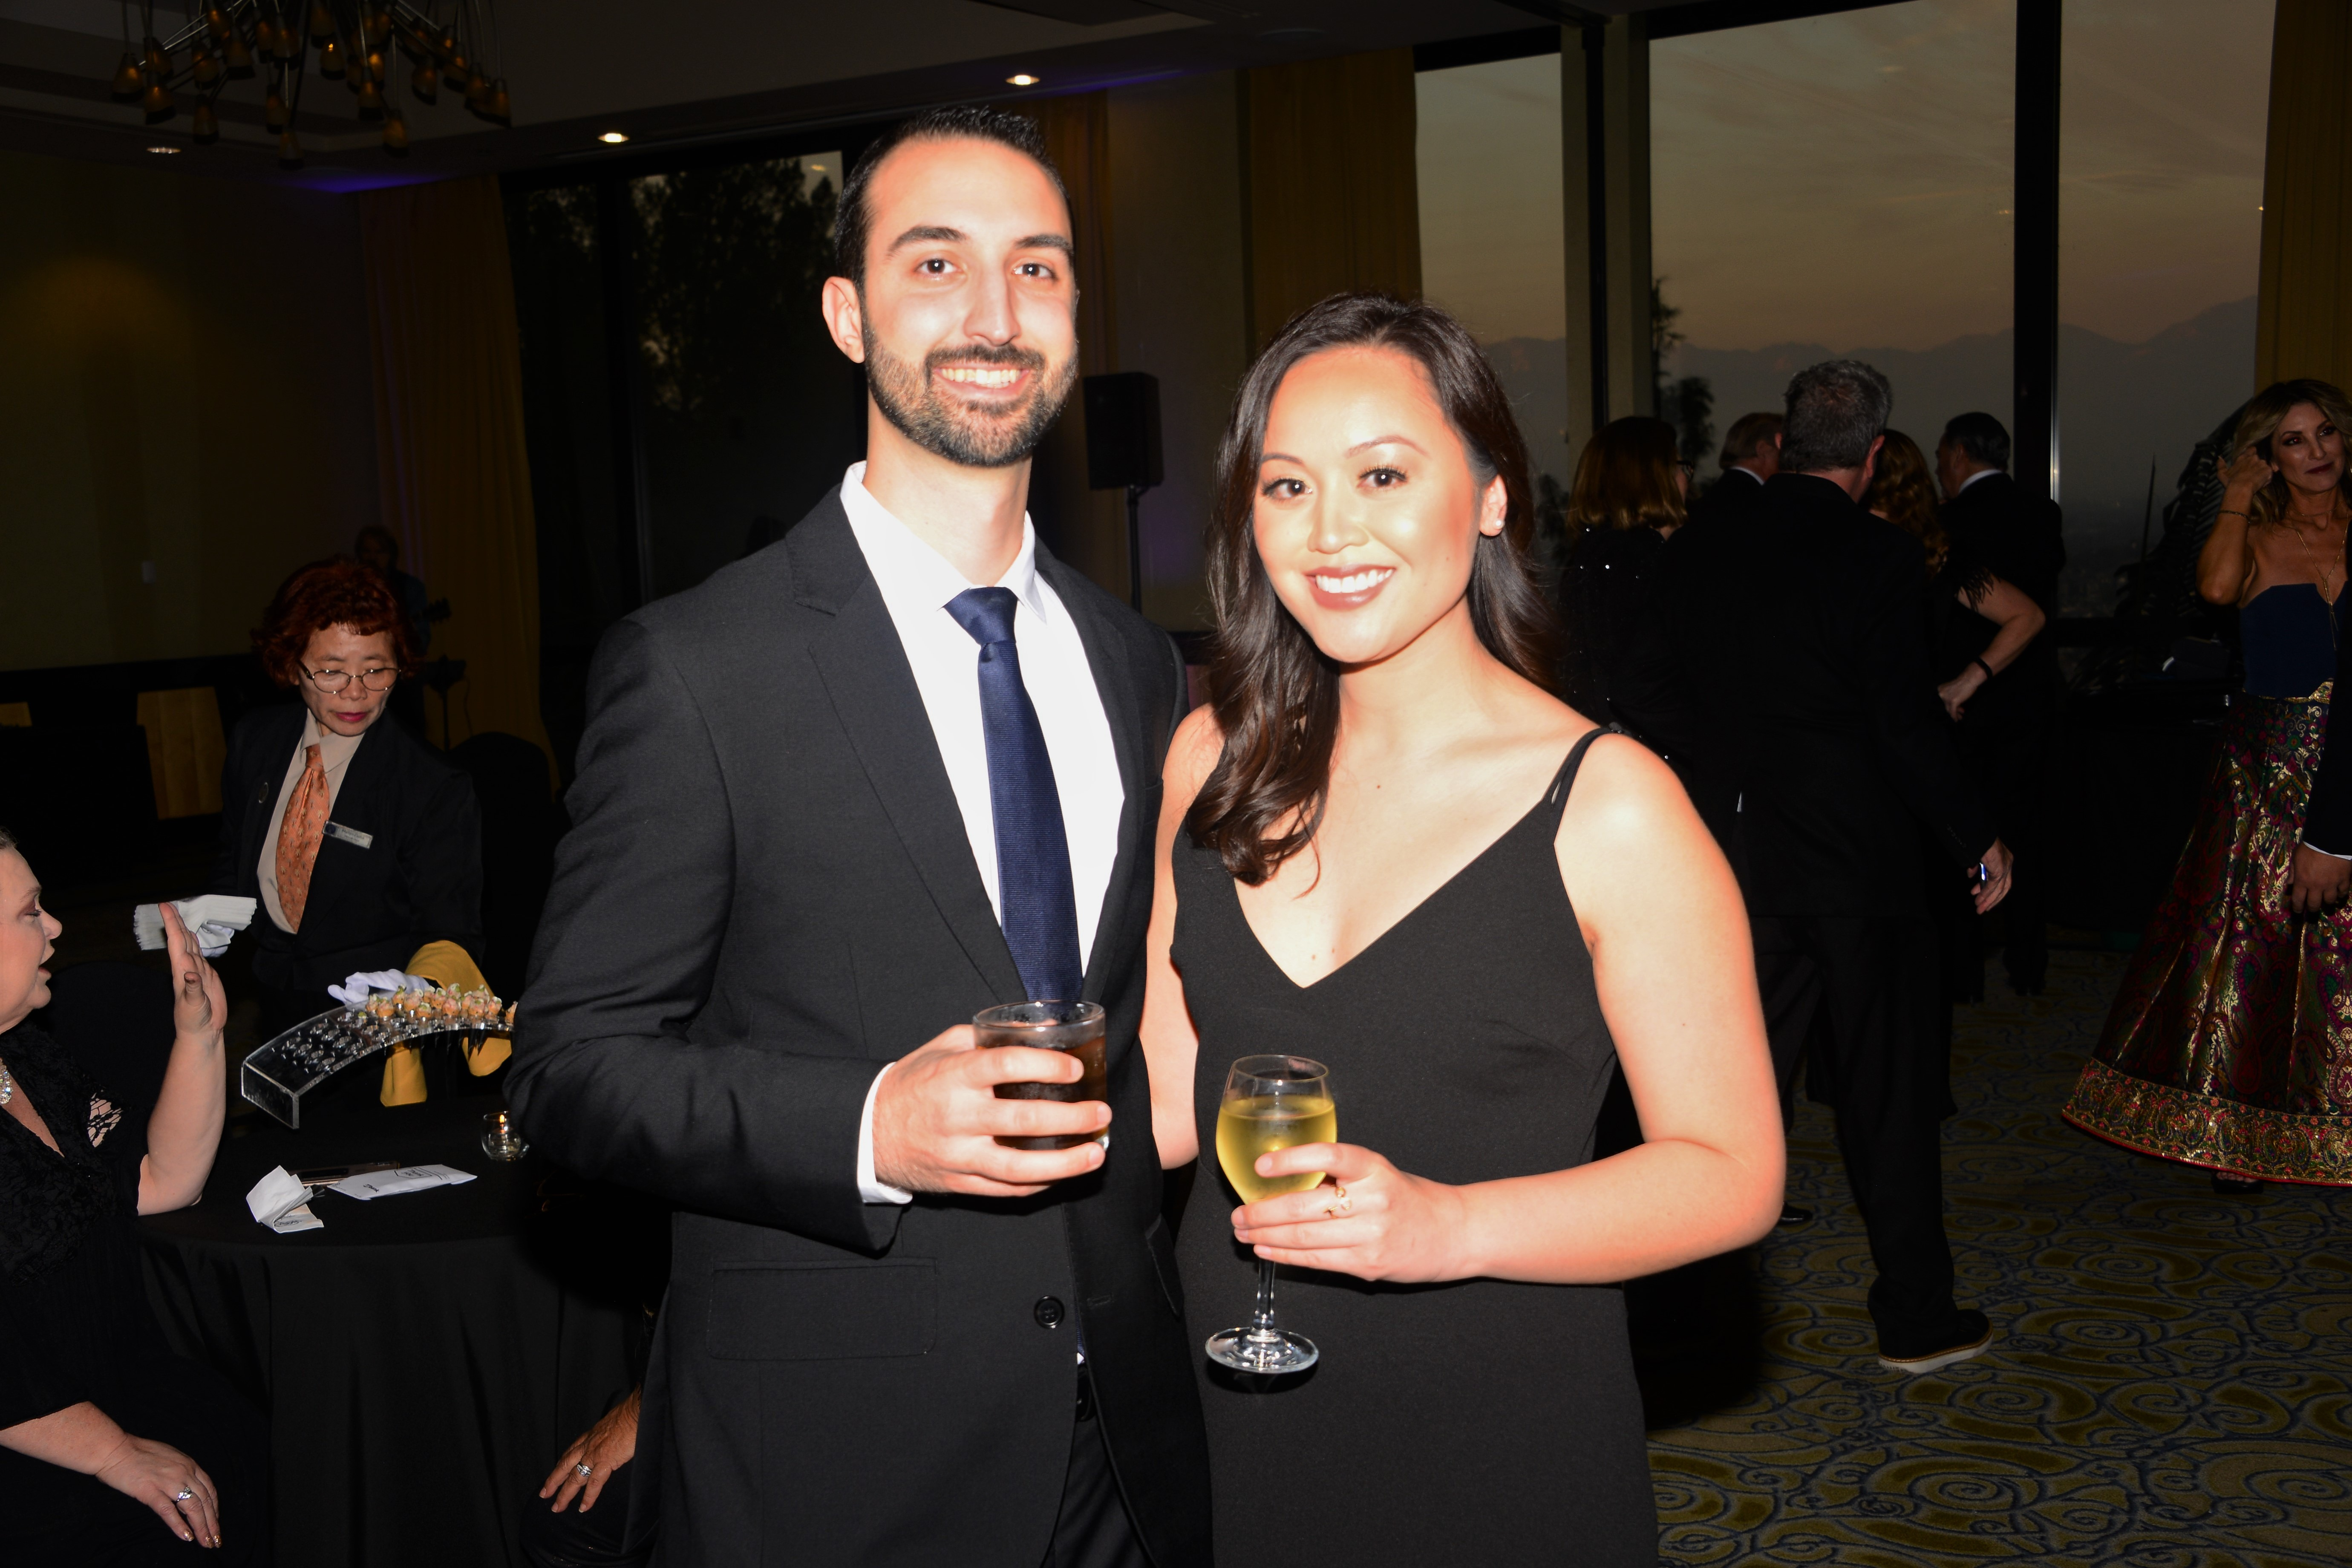 FPFC Apprentice, Amanda Nojadera and Peter Garcia of Quebec Distributing Co. having a great time before the Apprentice Graduation.